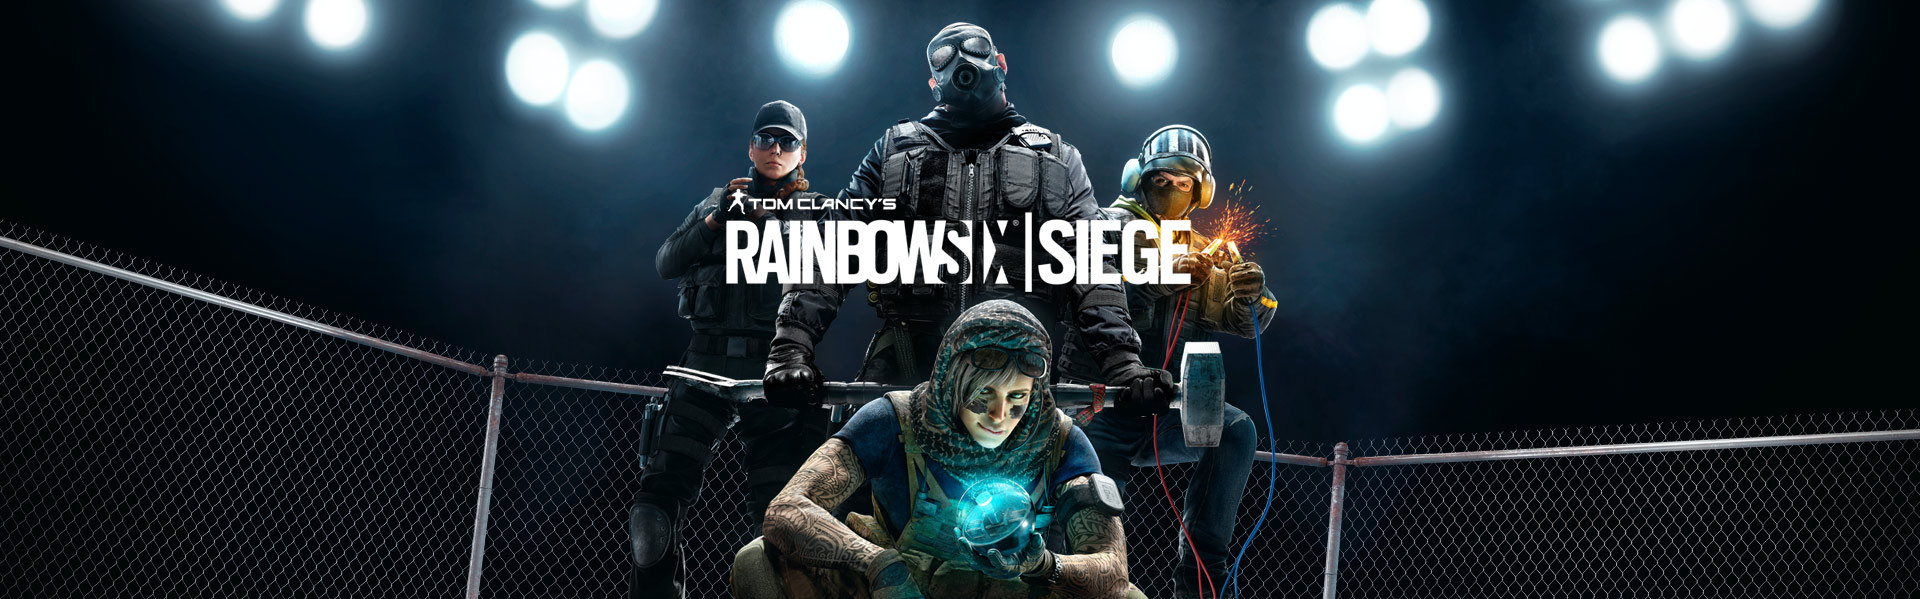 Tom Clancy's Rainbow Six Siege Advanced Edition Uplay Key NORTH AMERICA